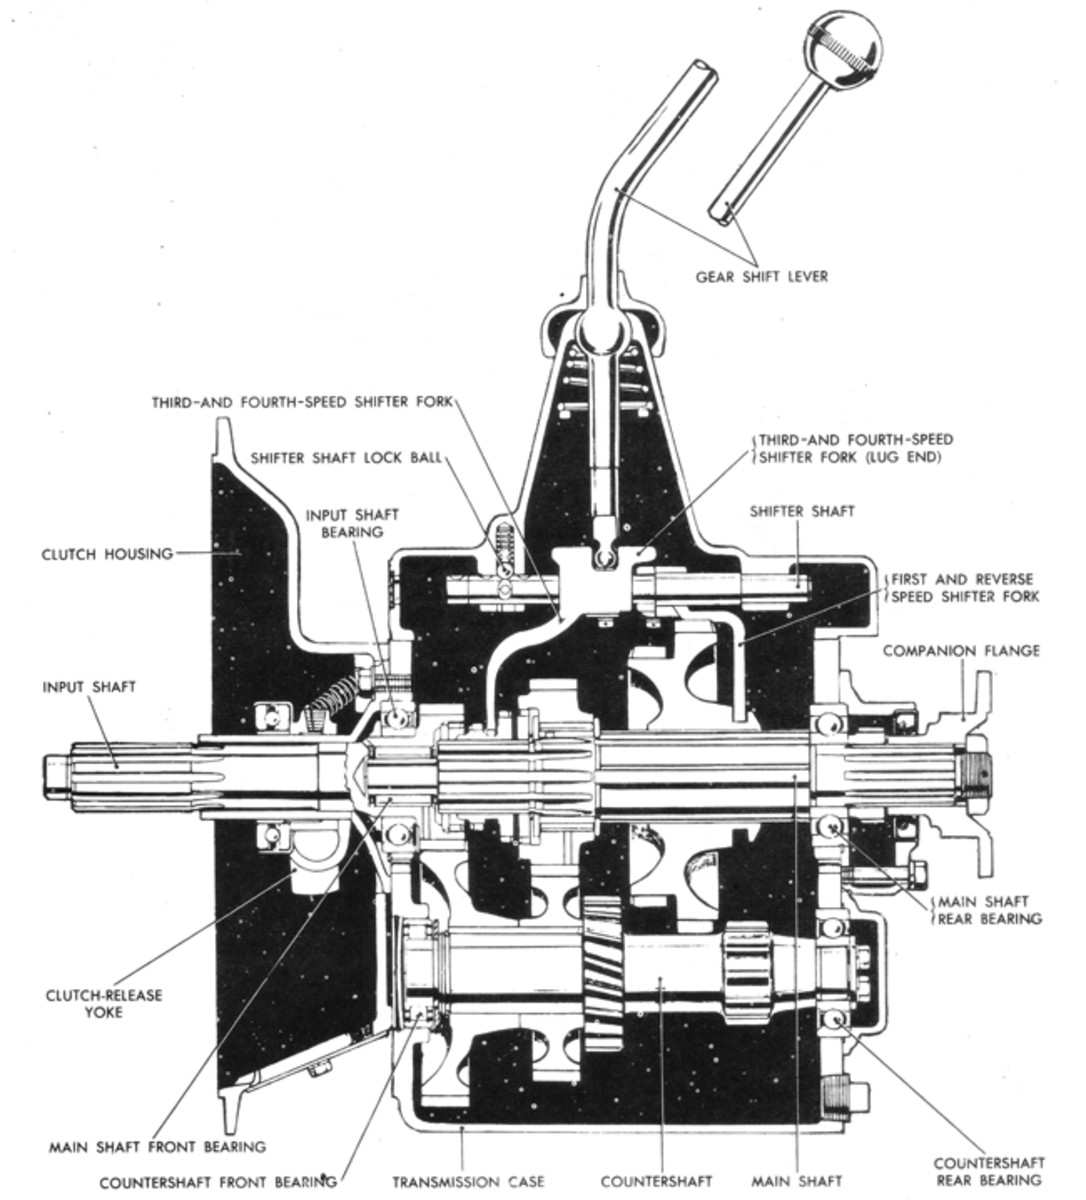 Motor vehicle transmissions may be divided into two basic types: manual and automatic. There are three basic types of manual transmissions: the sliding gear, the planetary, and the friction disk, though the sliding-gear type — such as this three-speed — is the most common today, and is what most people think of when manual transmissions are mentioned.